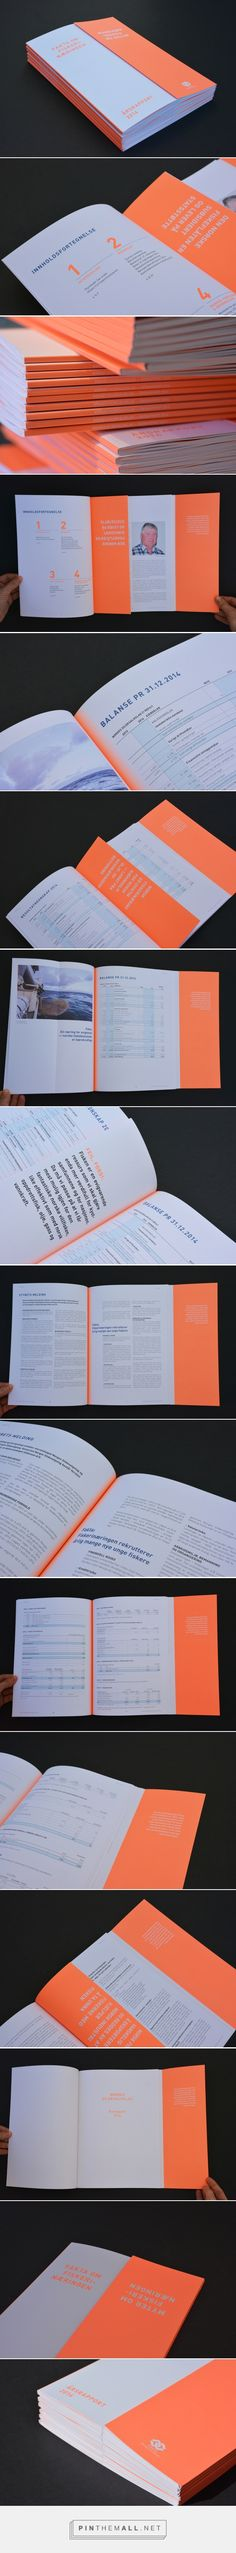 Myths and facts | Annual report by Ragne Balteskard